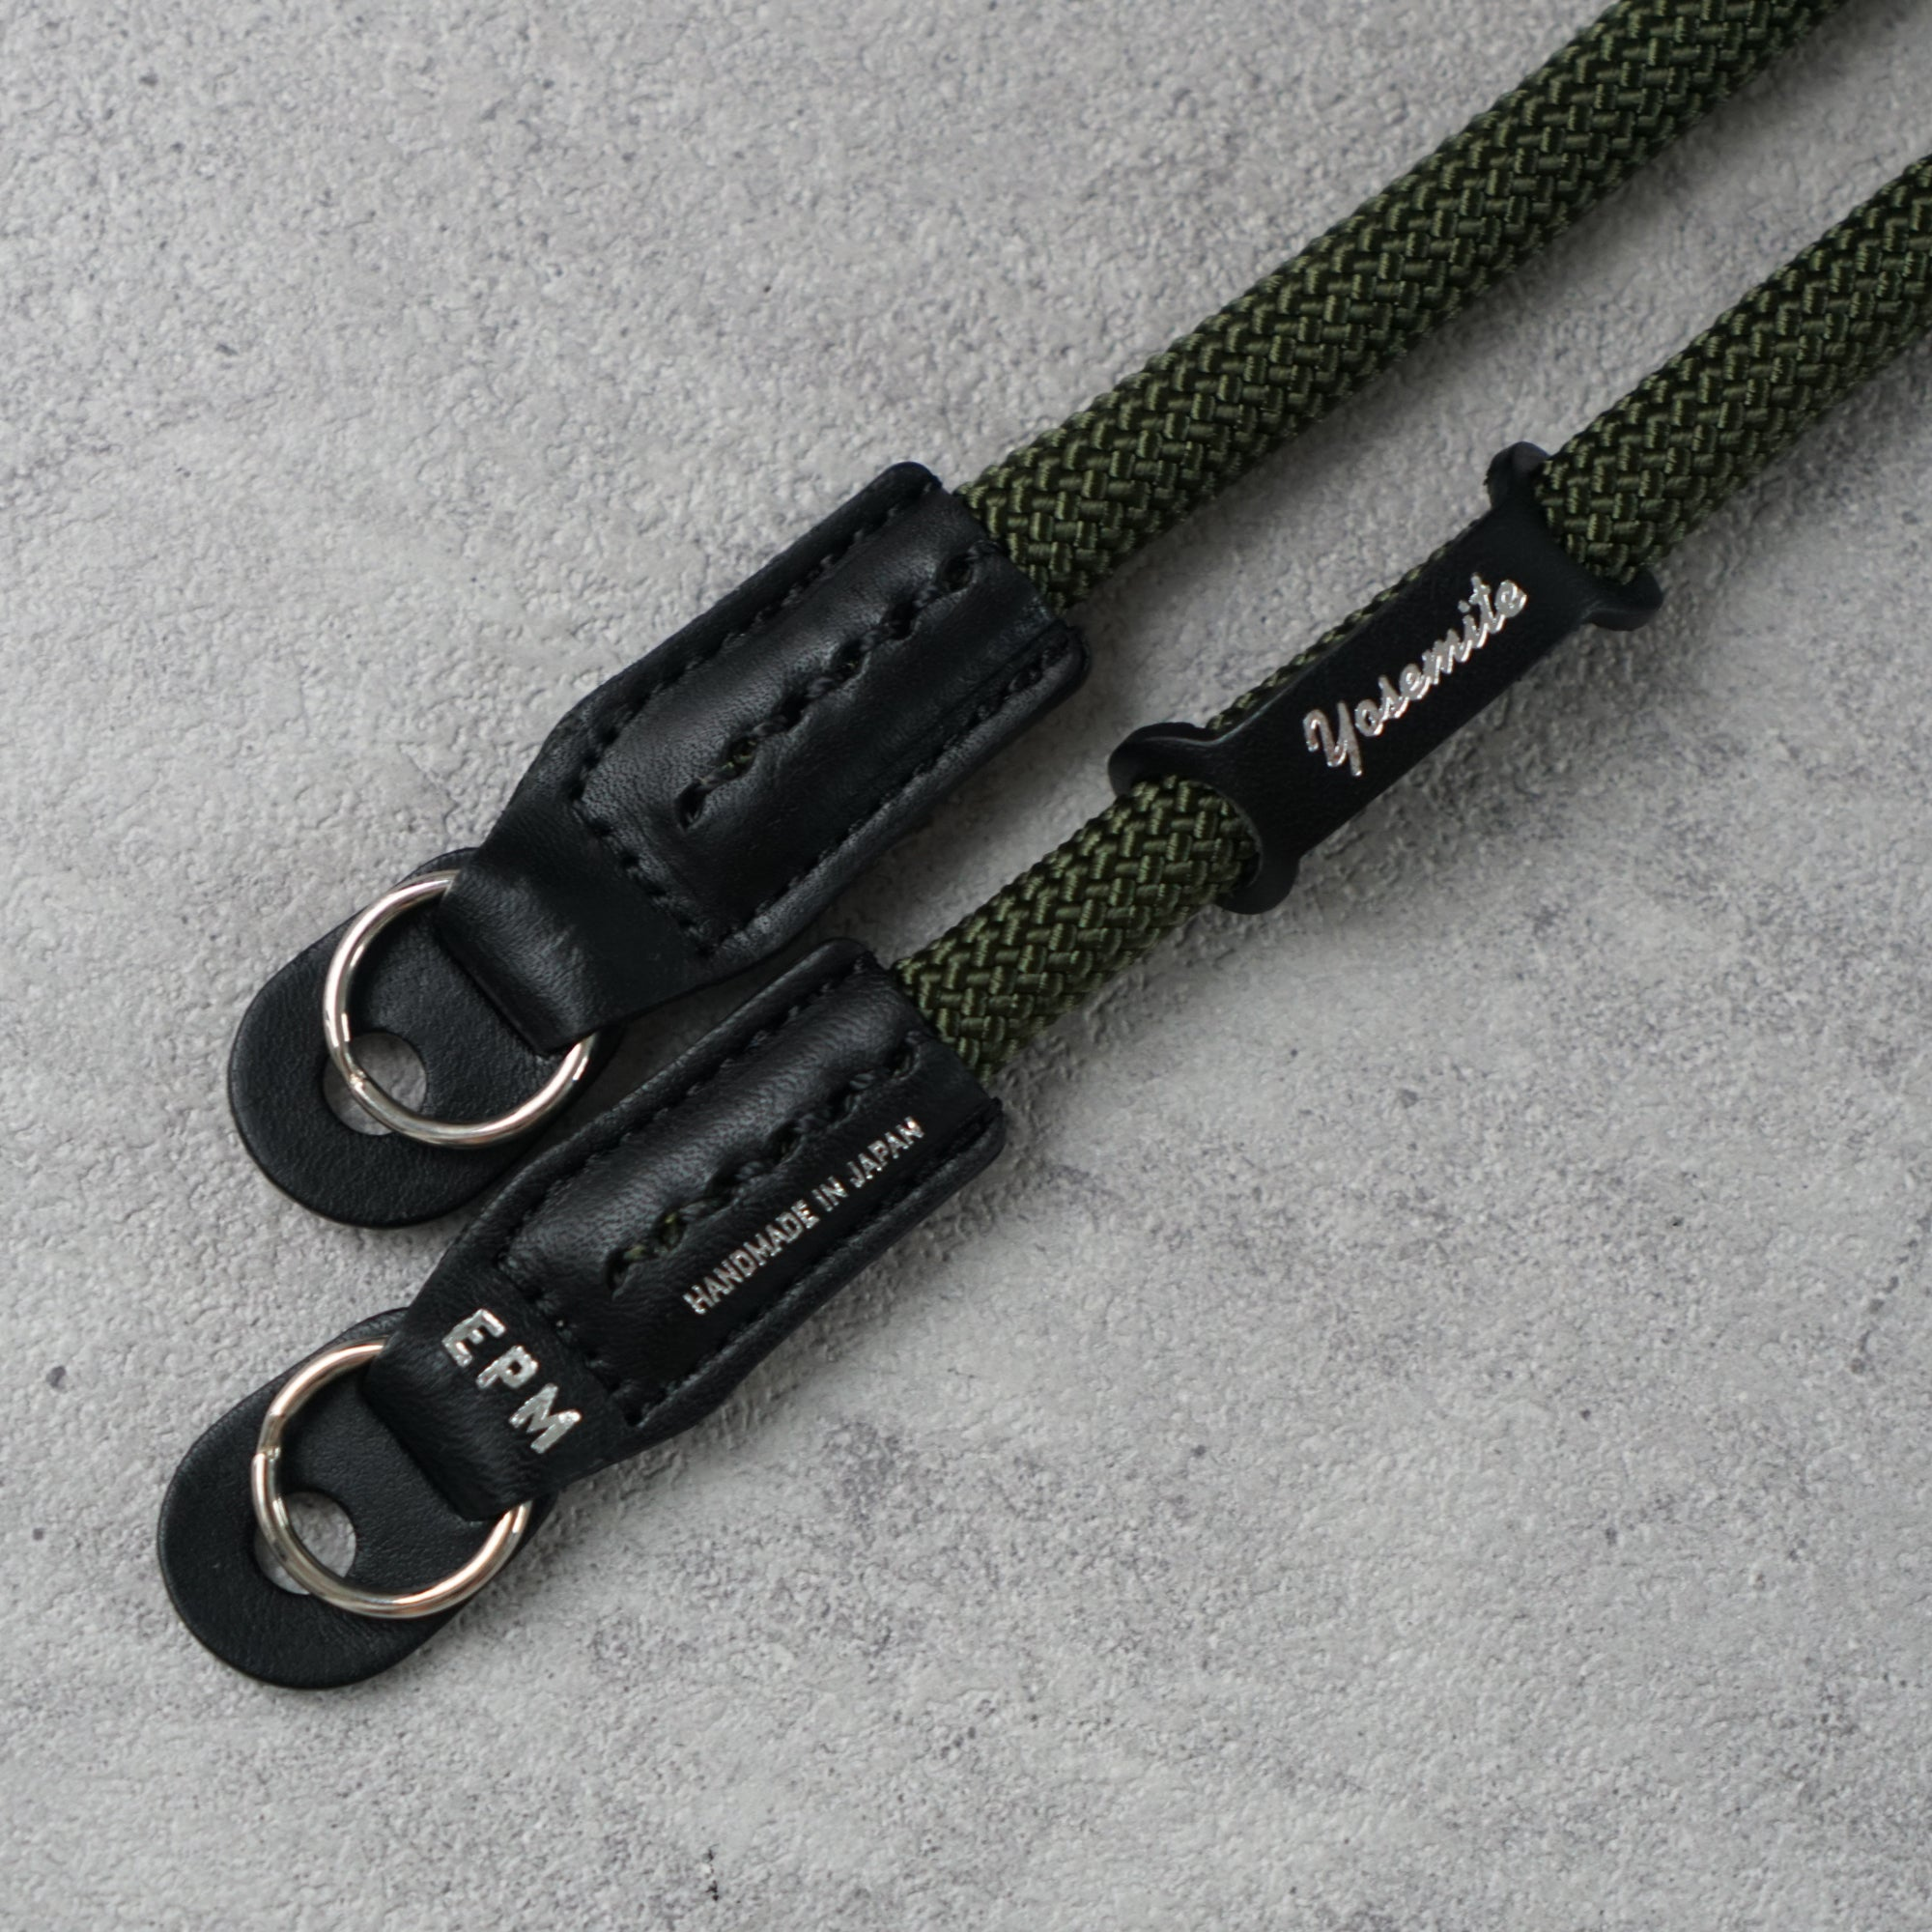 YOSEMITE CAMERA STRAP <br>SAFARI